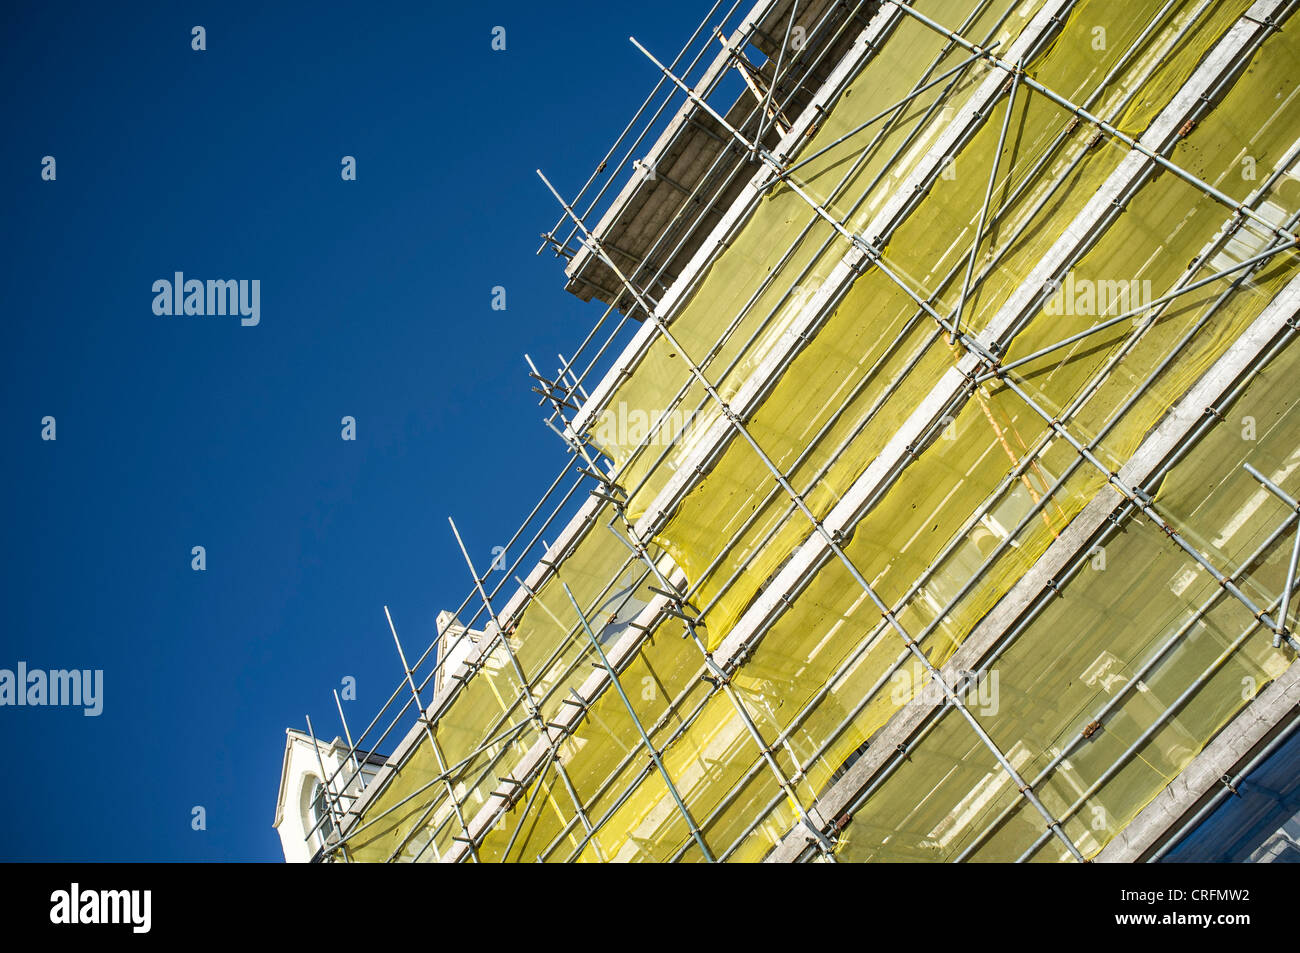 Netting covered scaffolding on the exterior of a building being renovated, UK - Stock Image